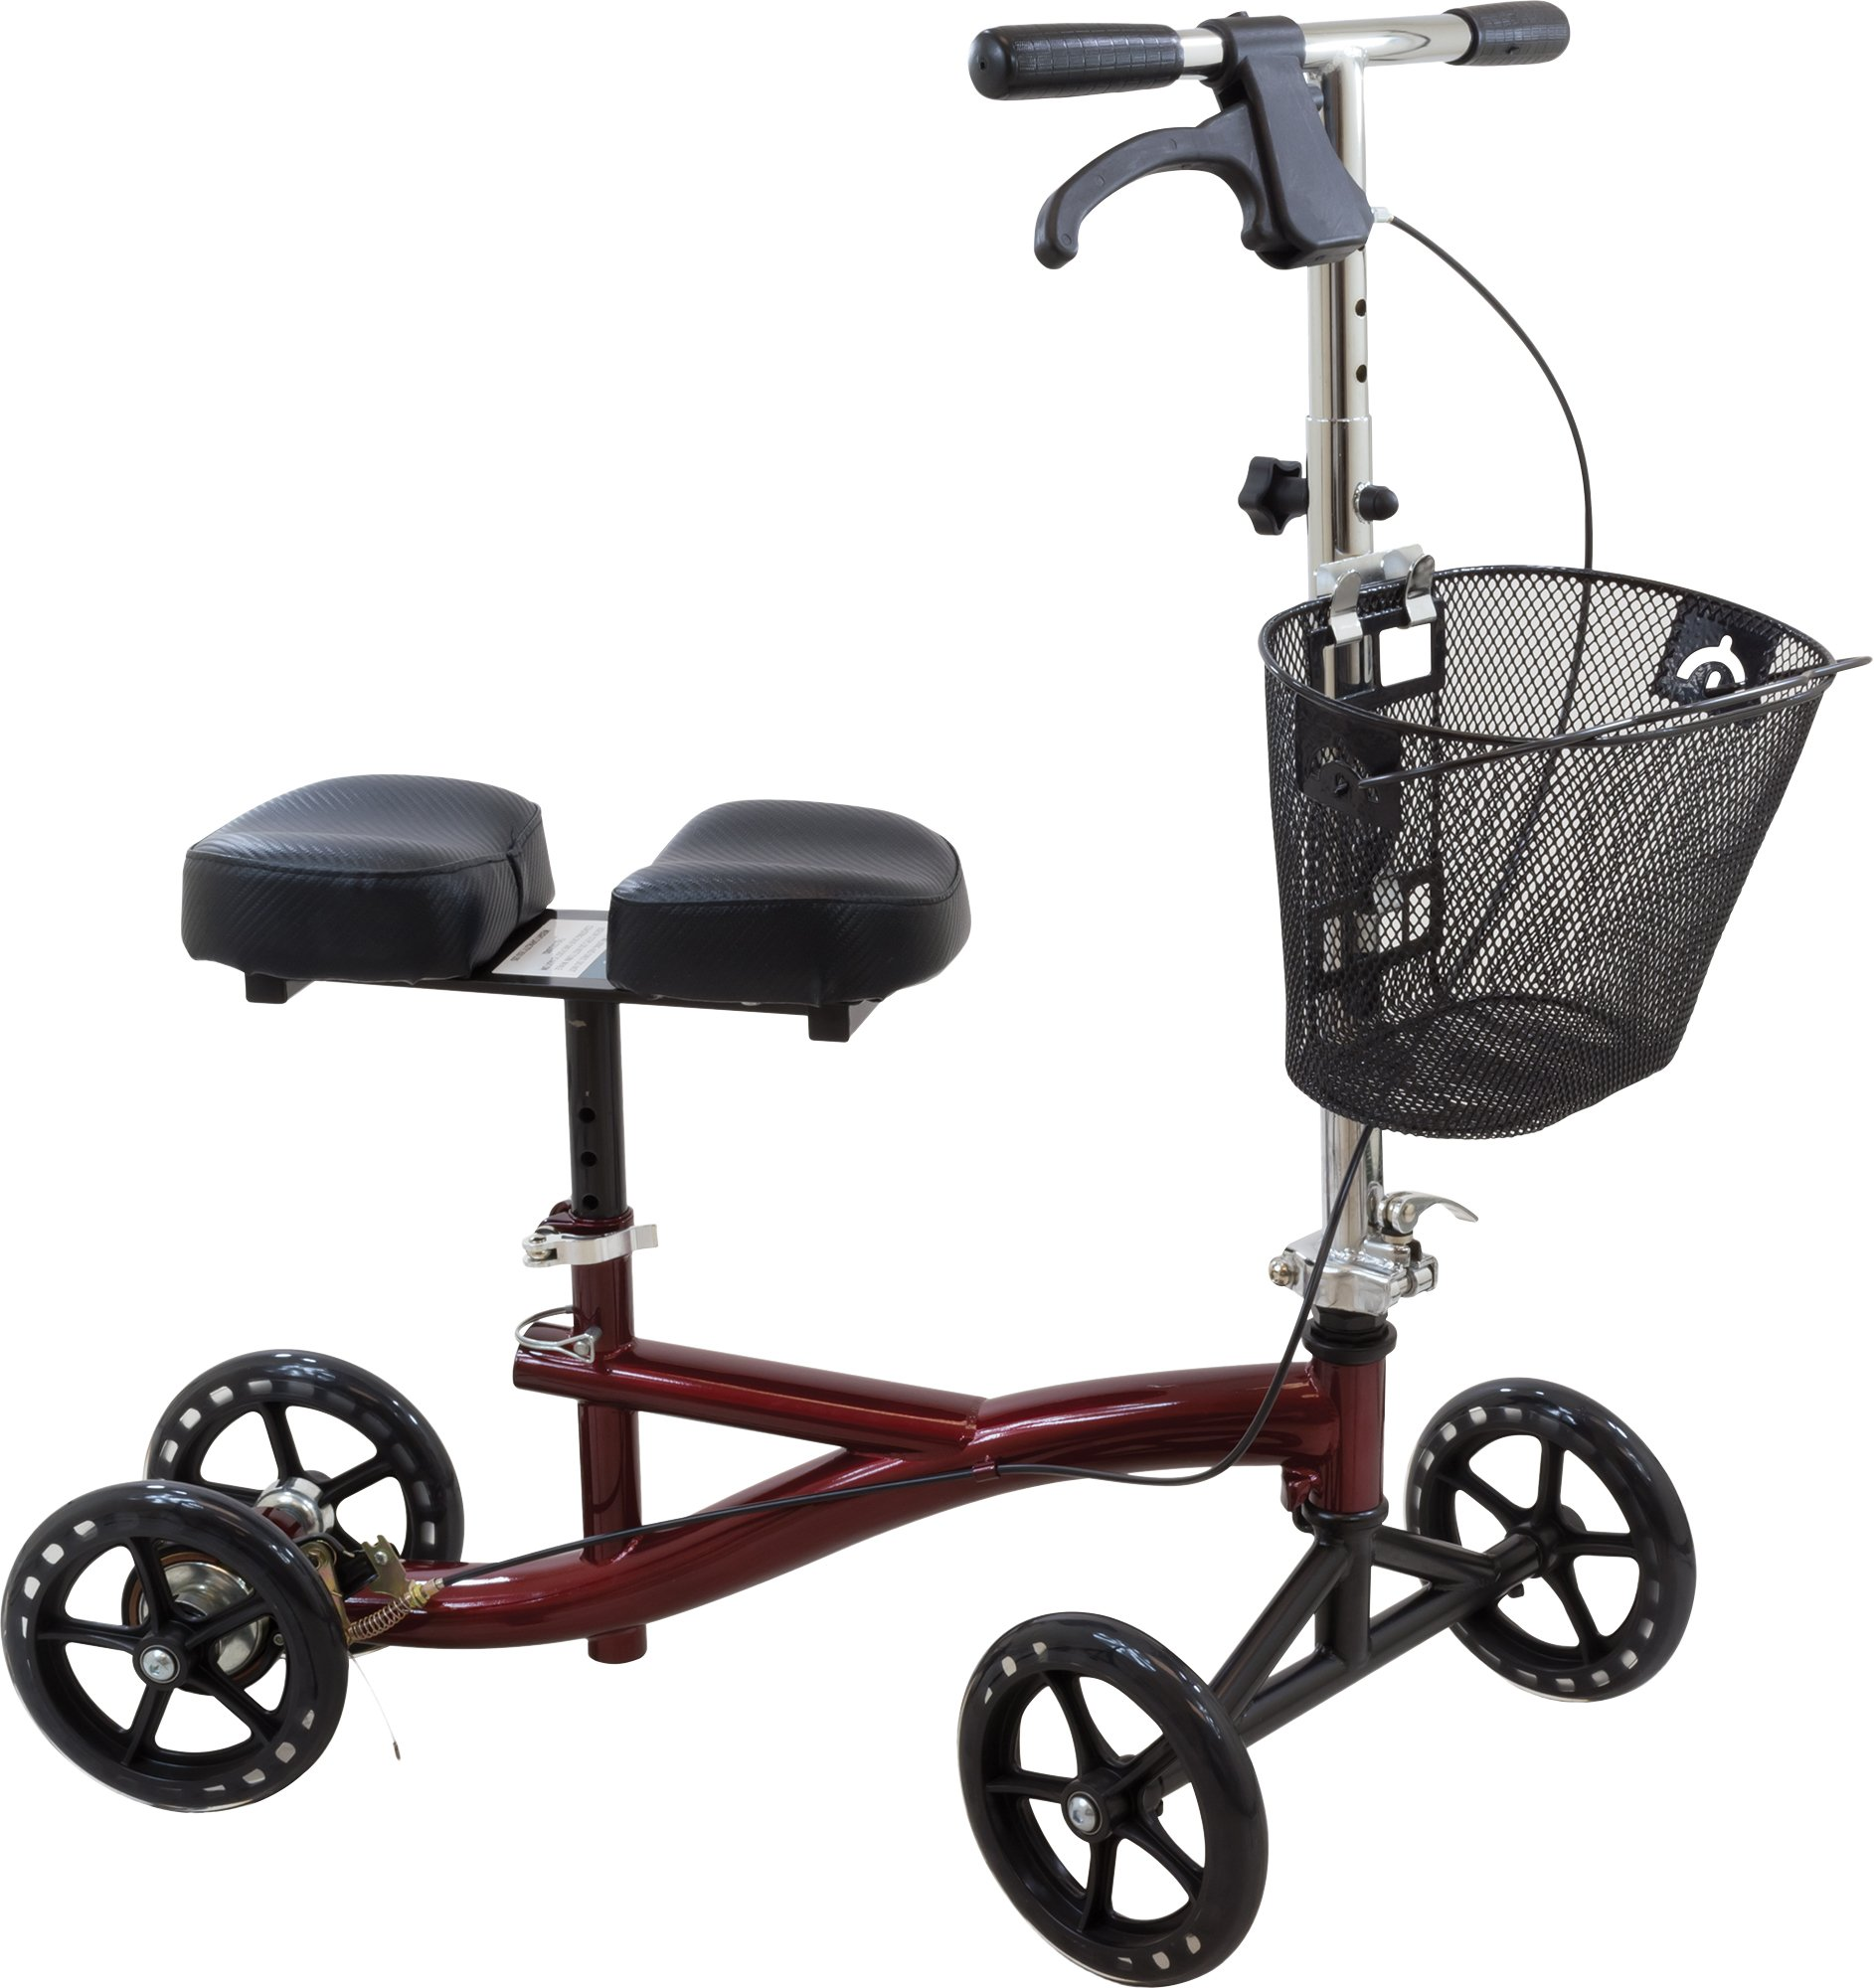 Roscoe Knee Scooter with Basket - Knee Walker for Ankle or Foot Injuries - Height Adjustable Knee Crutch Medical Scooter, Burgundy by Roscoe Medical